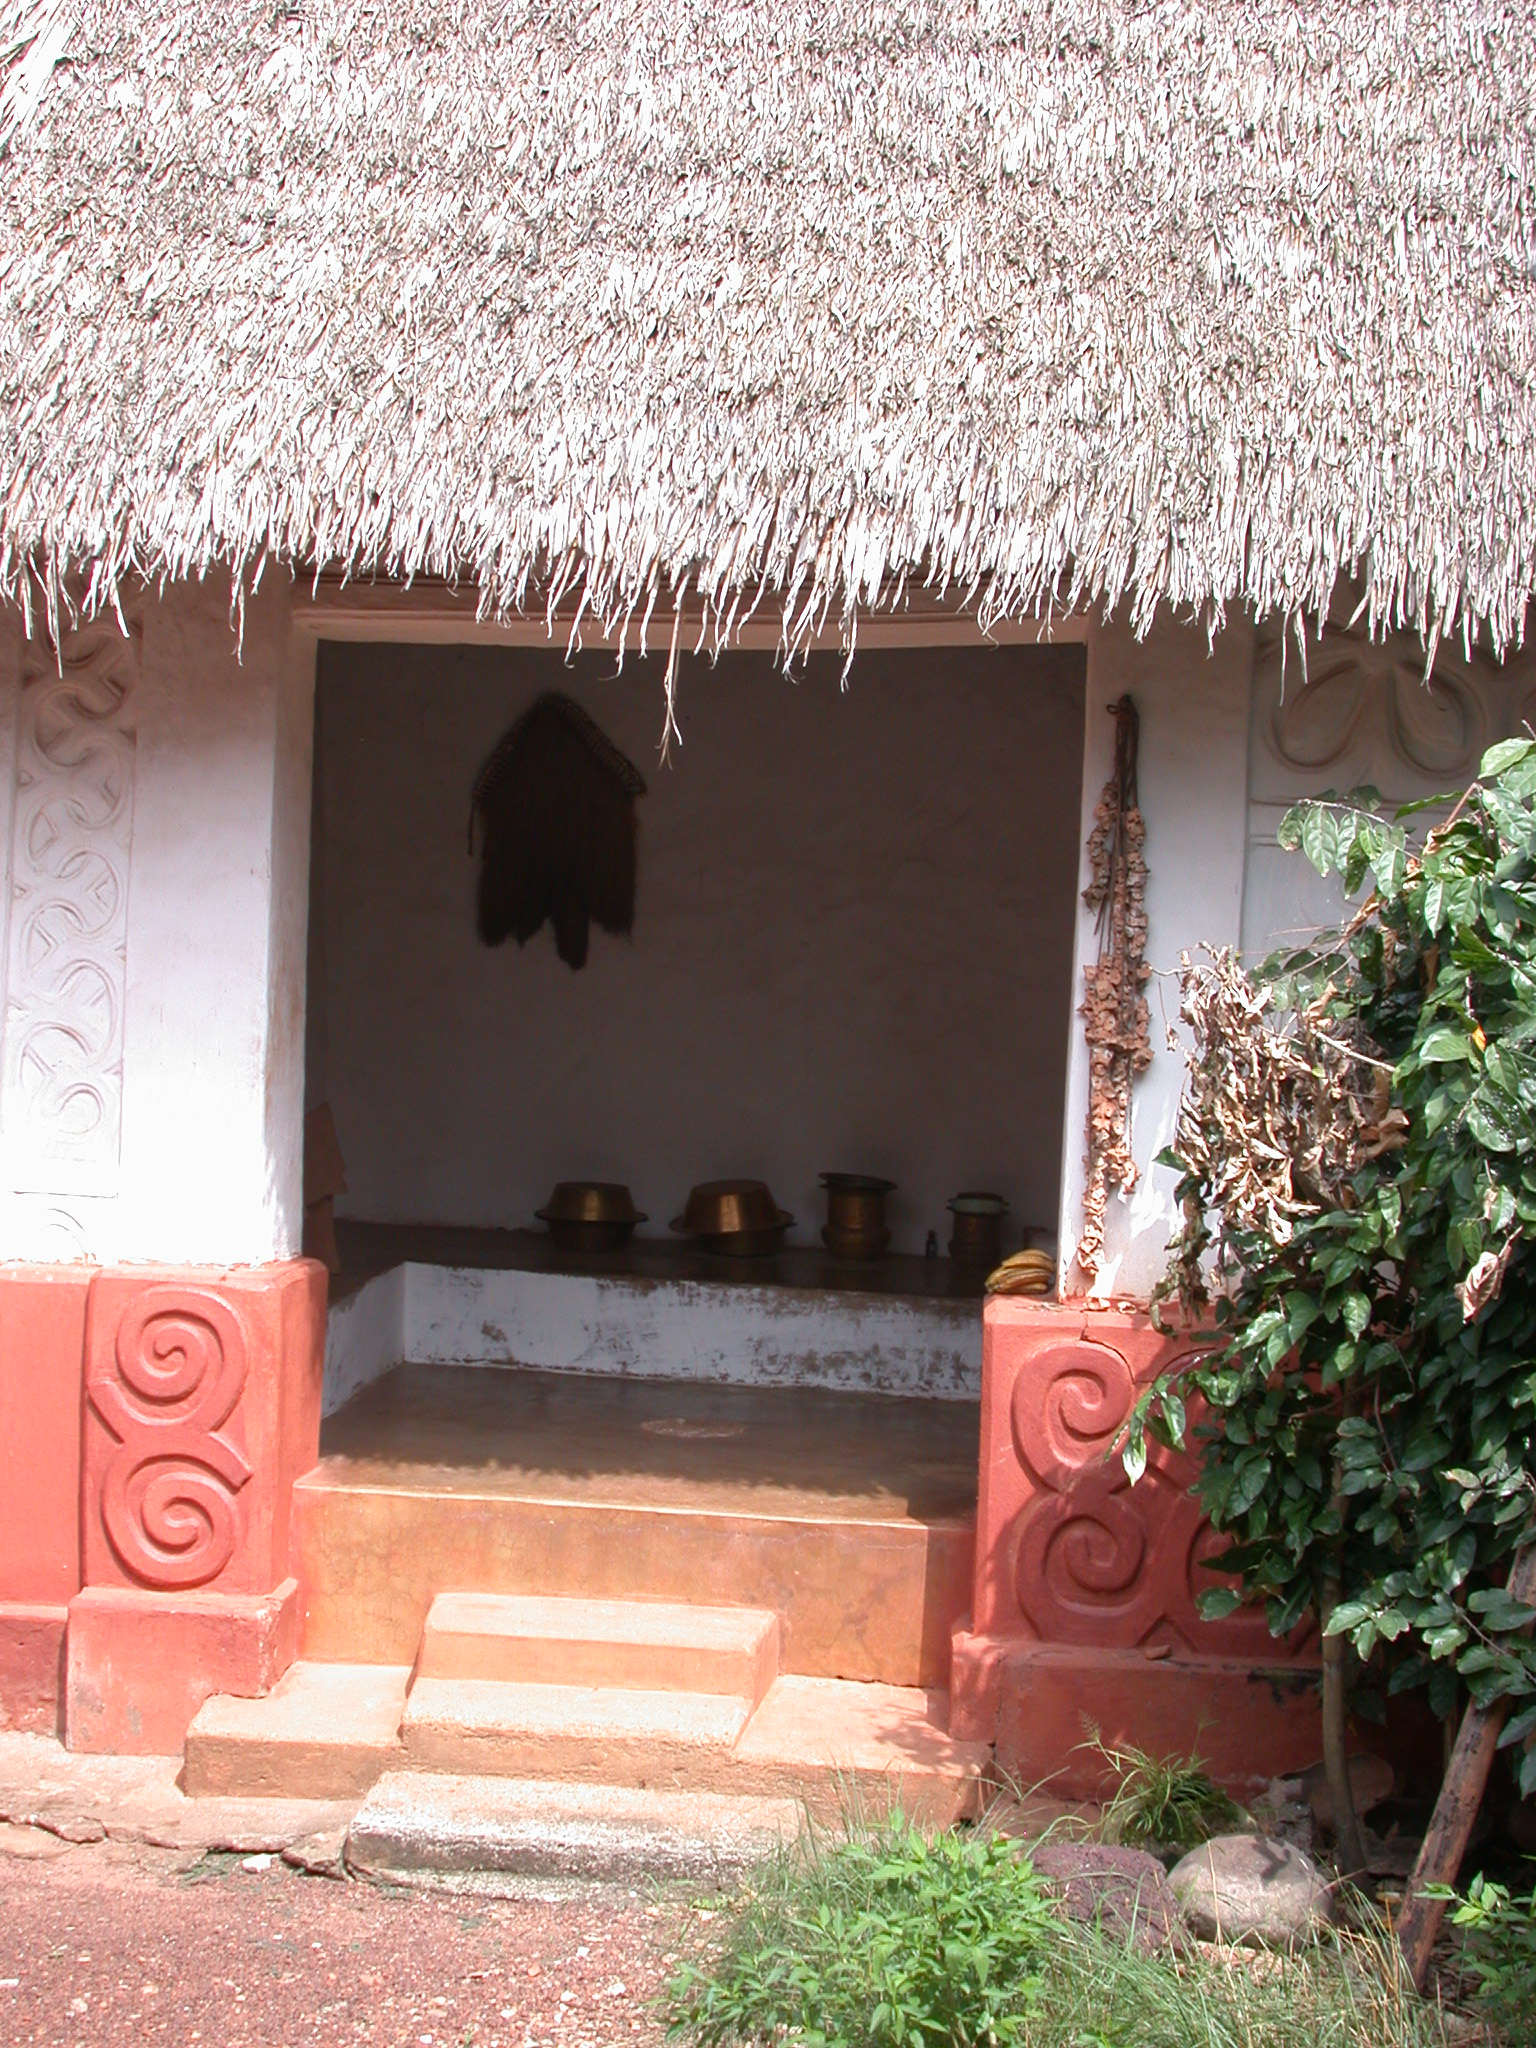 Asante Traditional Shrine at Ejisu-Besease, Ghana